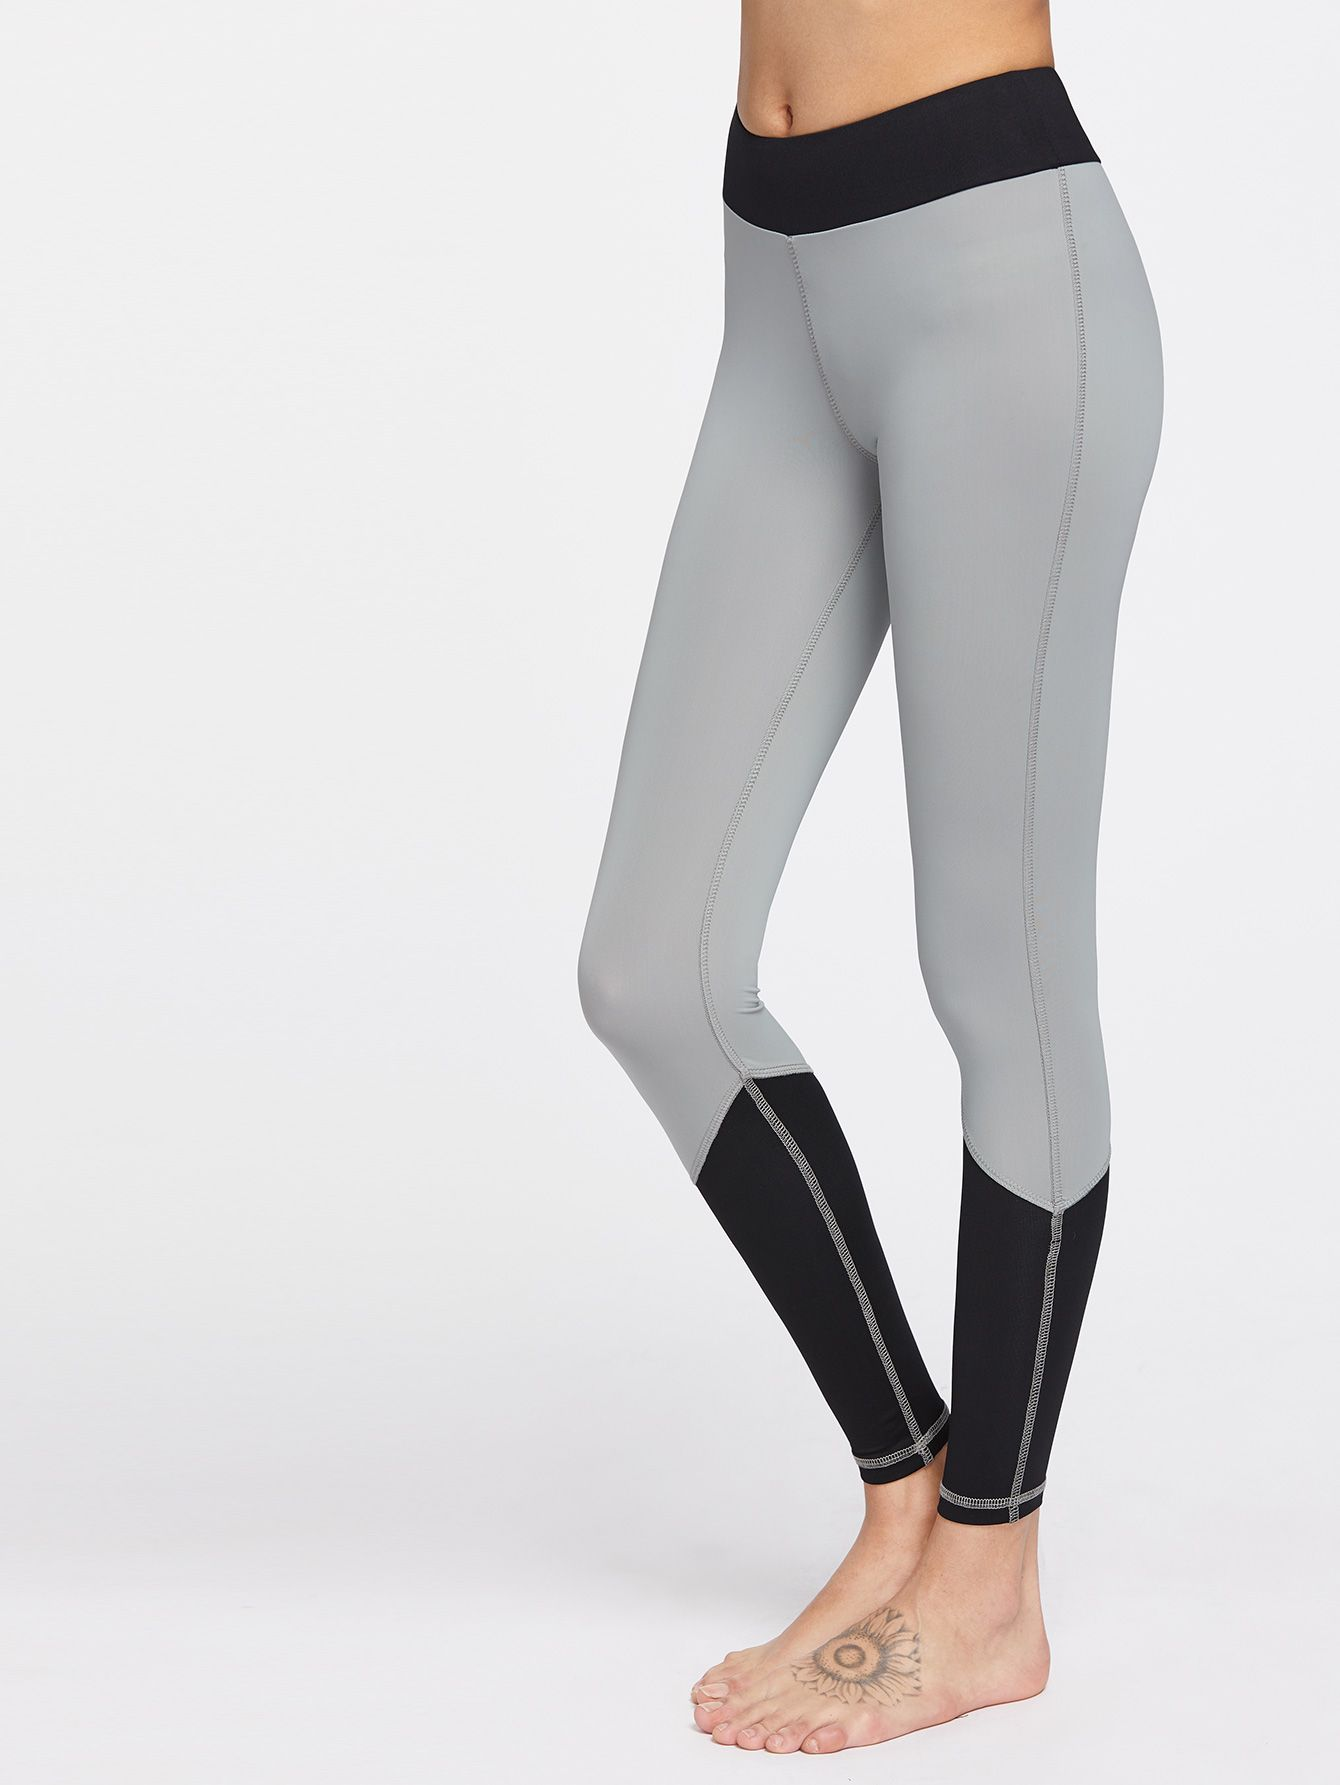 1c23042c8c492 Shop Color Block Gym Leggings online. SheIn offers Color Block Gym Leggings  & more to fit your fashionable needs.